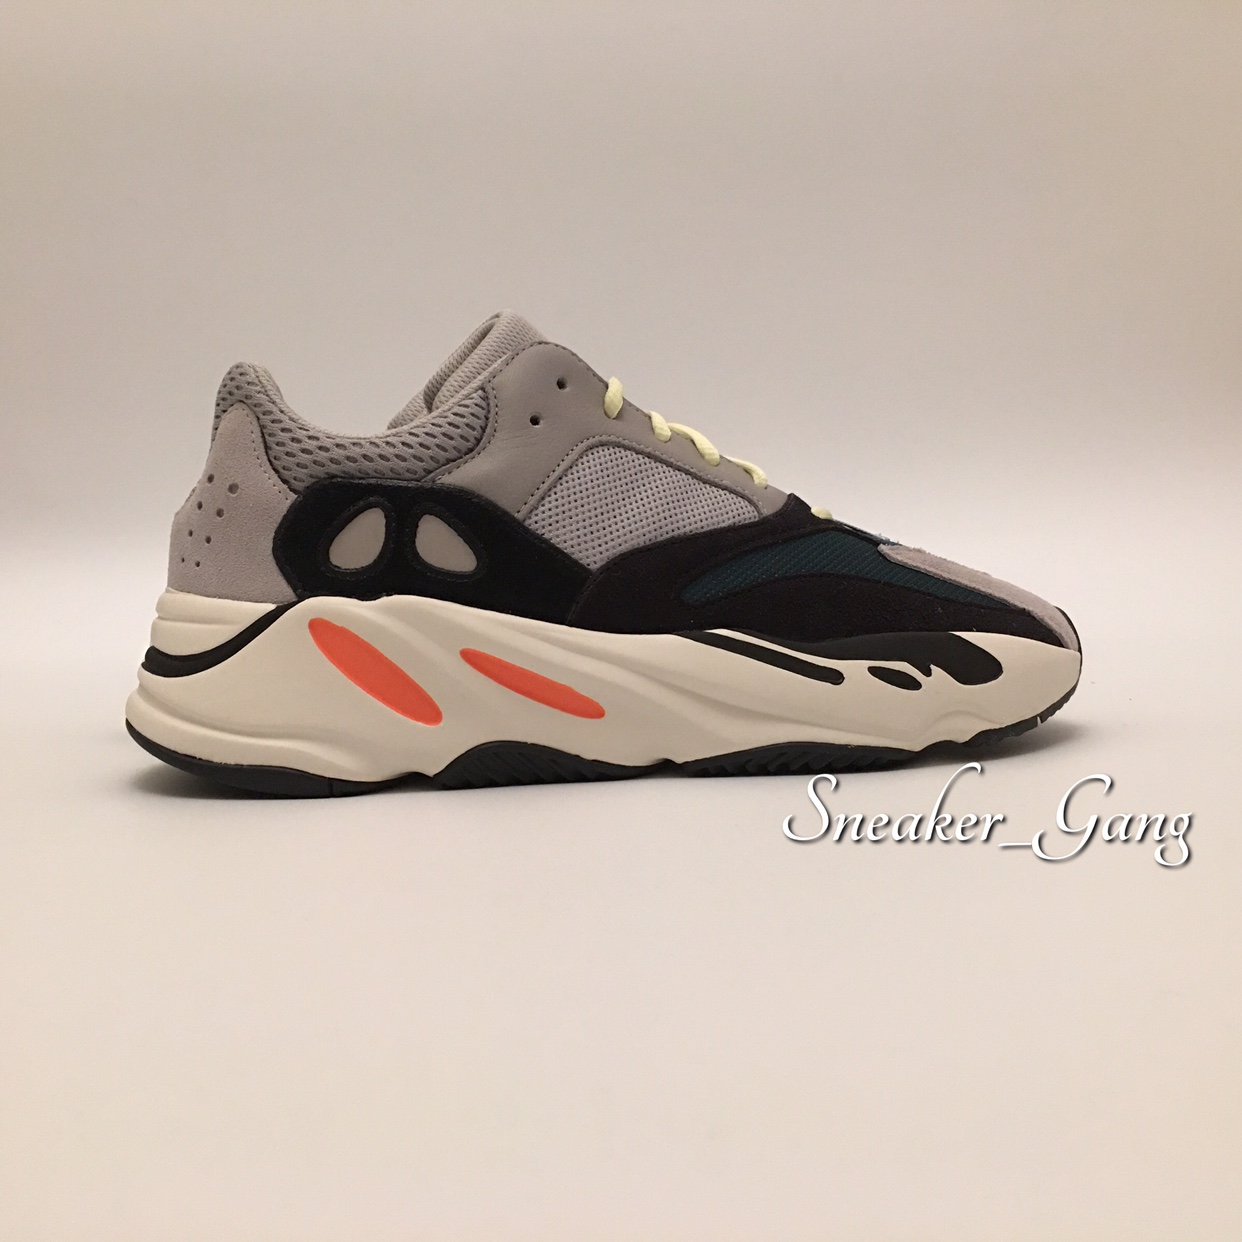 save off 006e6 2e442 Adidas YEEZY 700 OG Wave Runner 3M Kanye West ...